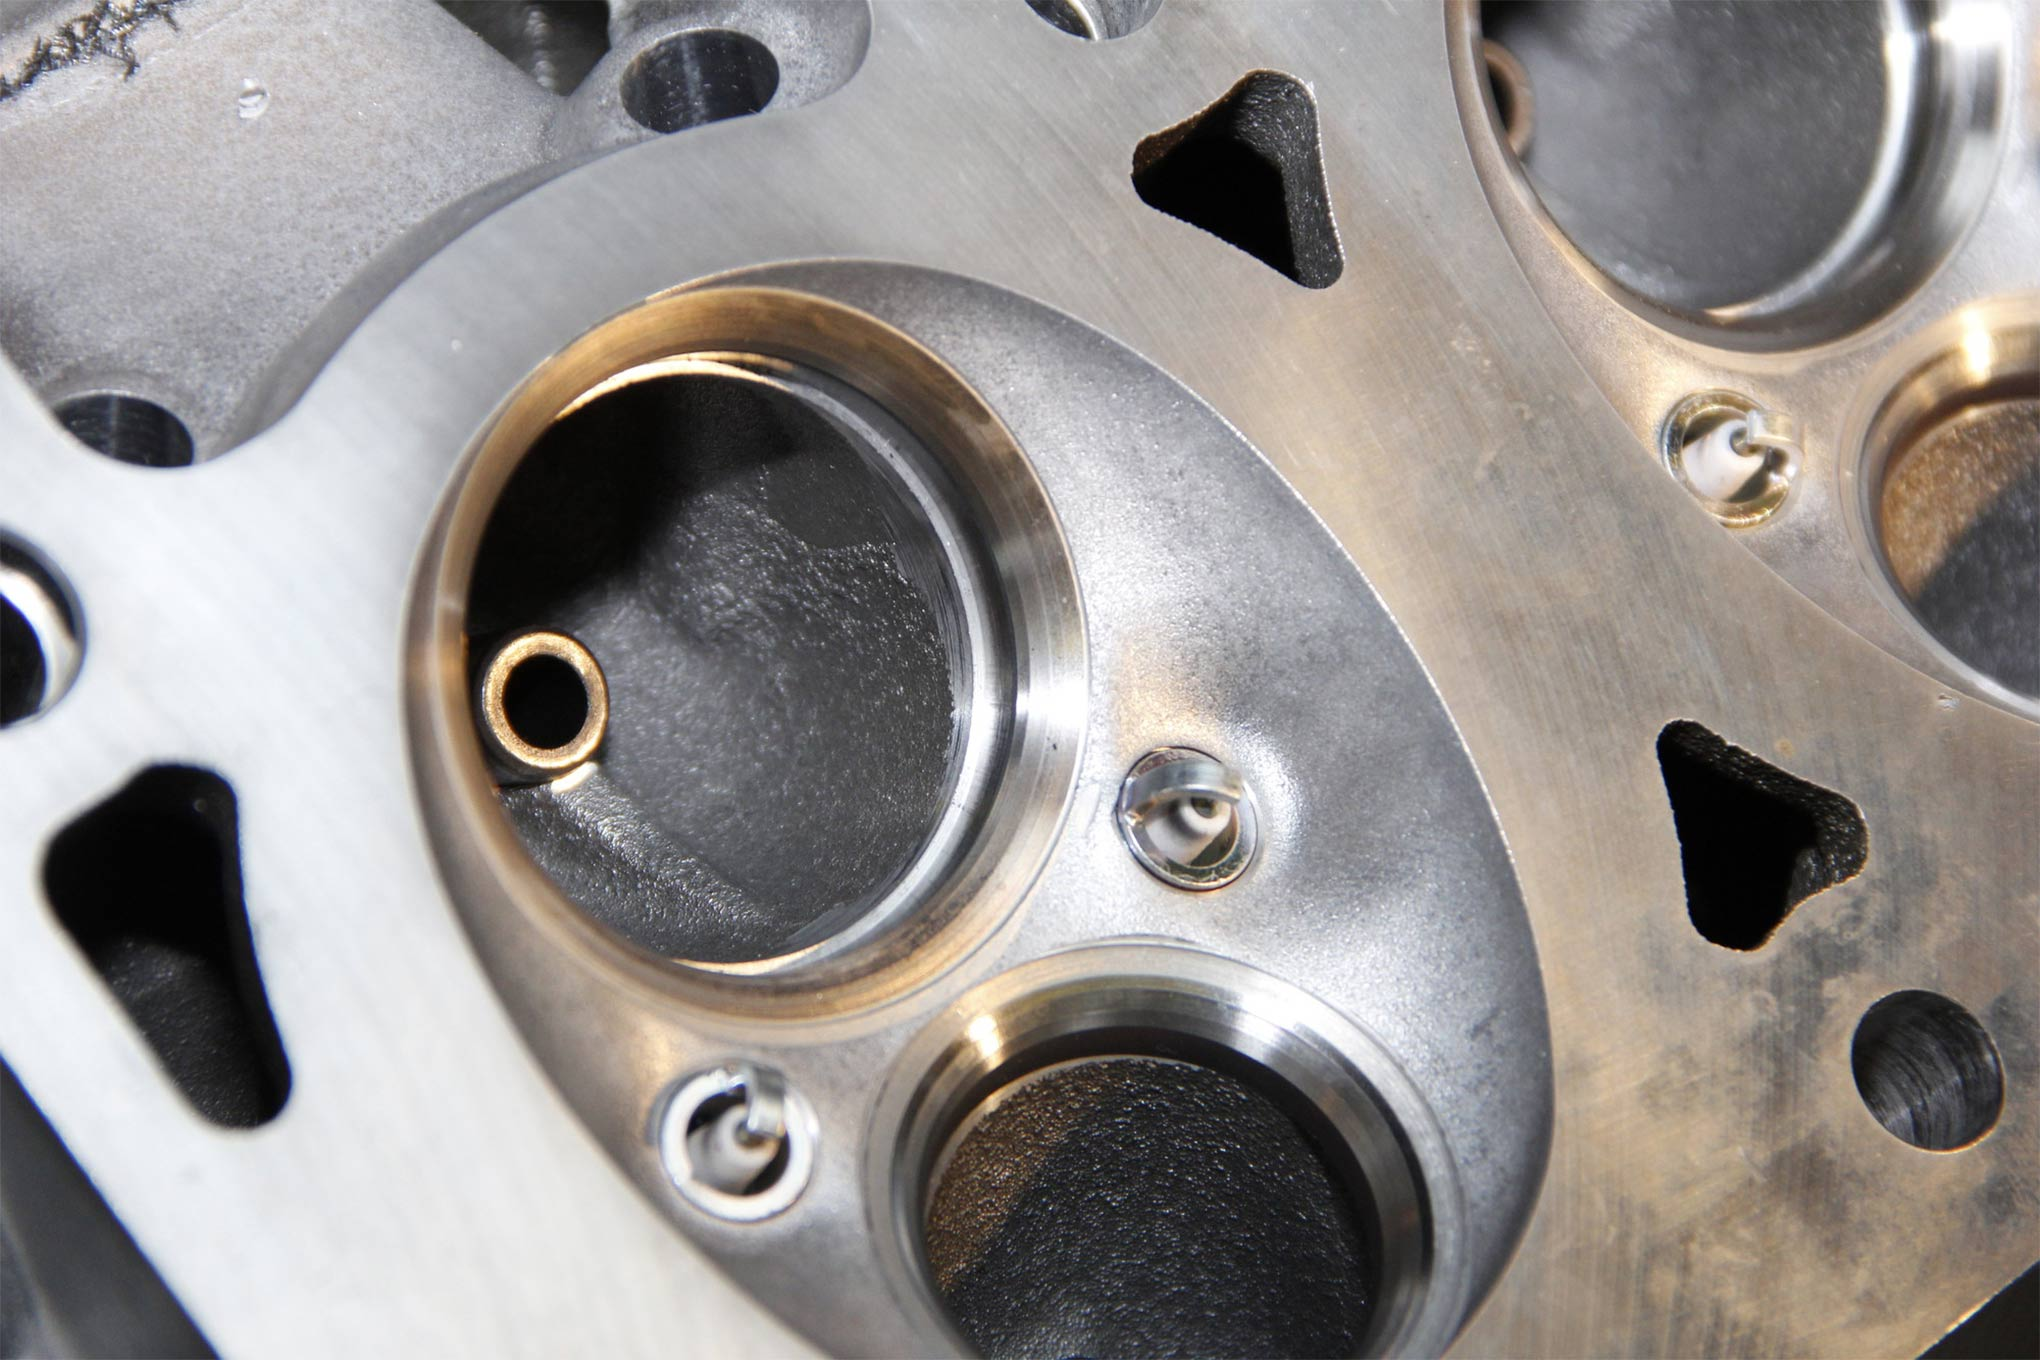 1. The stock Hemi valve seat is the choke point for flow. To fix this, bore the ID of the valve seat to 85-92 percent of the valve diameter and add a five-angle cut to the seat.